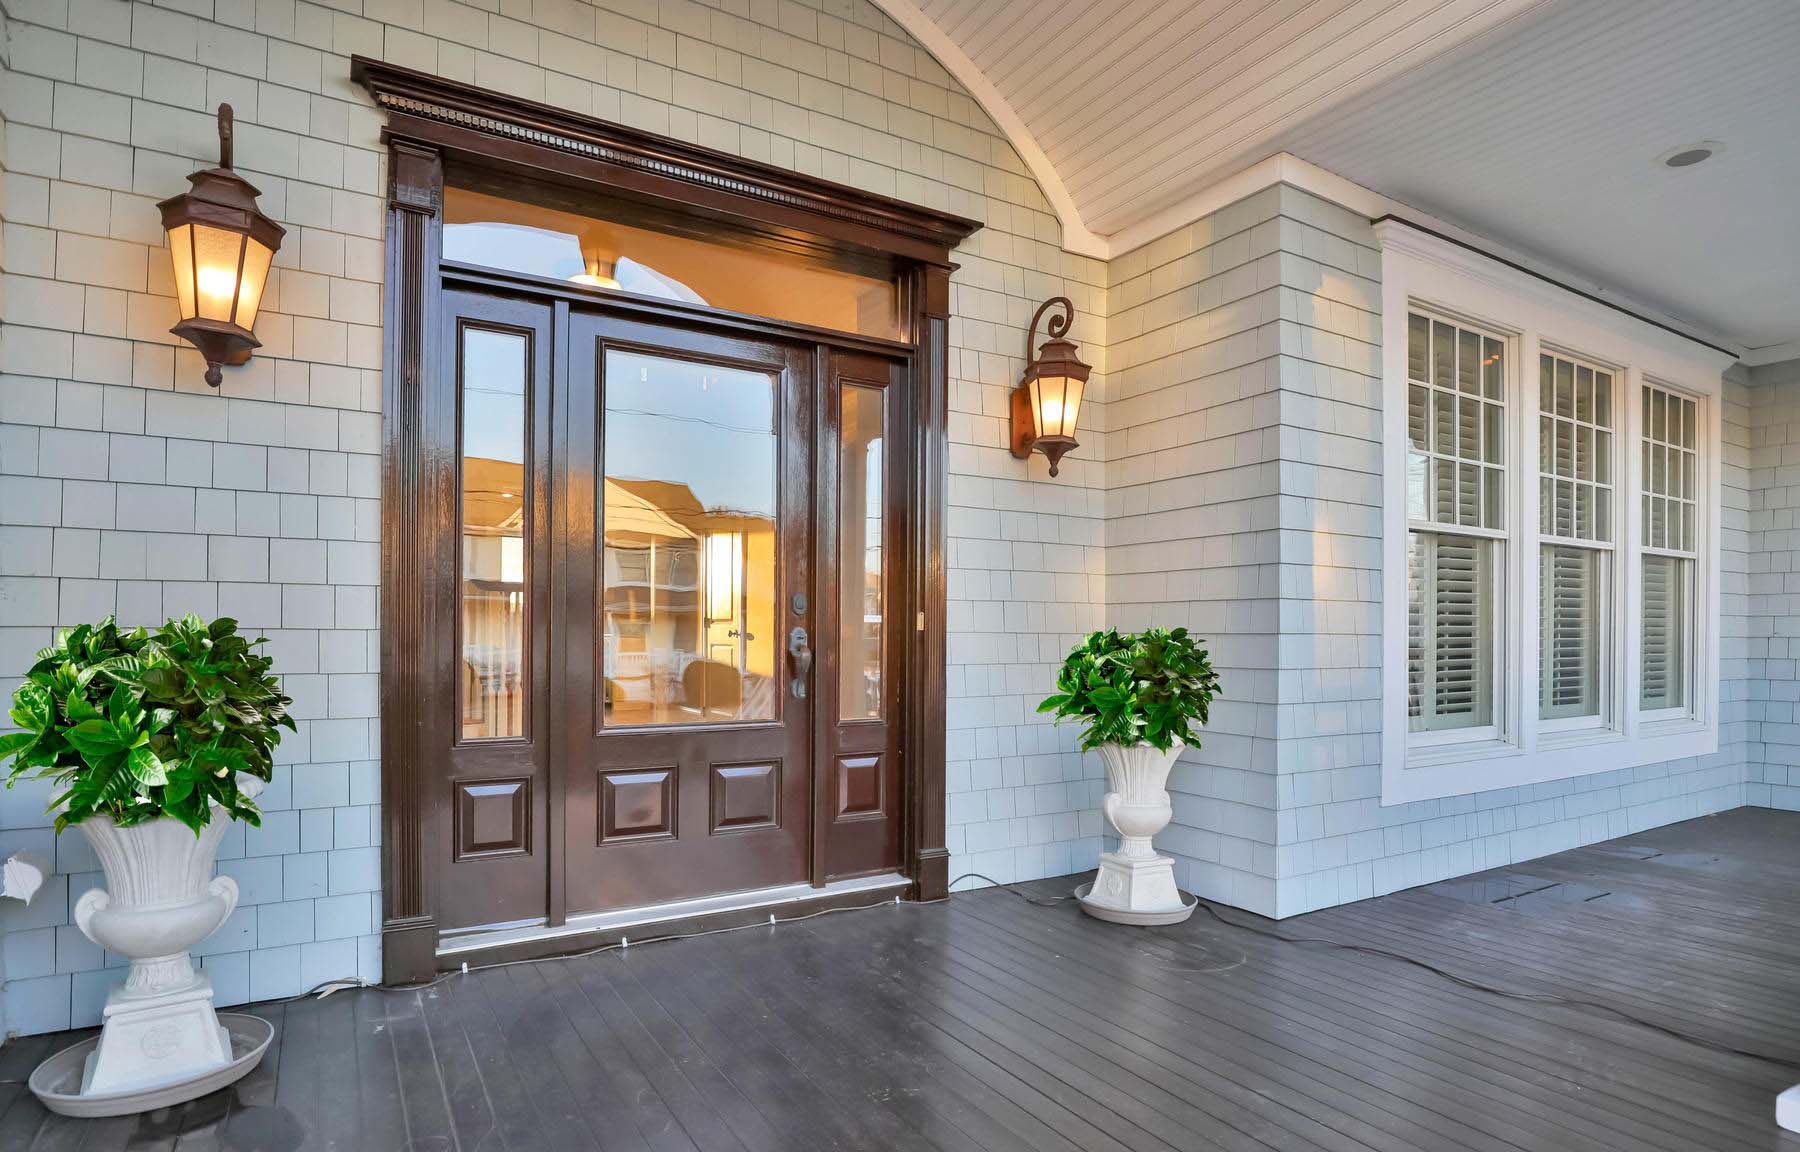 Front porch with light gray cedar shake siding, dark brown stained wood front door, white trim and soffit with recessed lighting. Dark brown stained wood front porch.